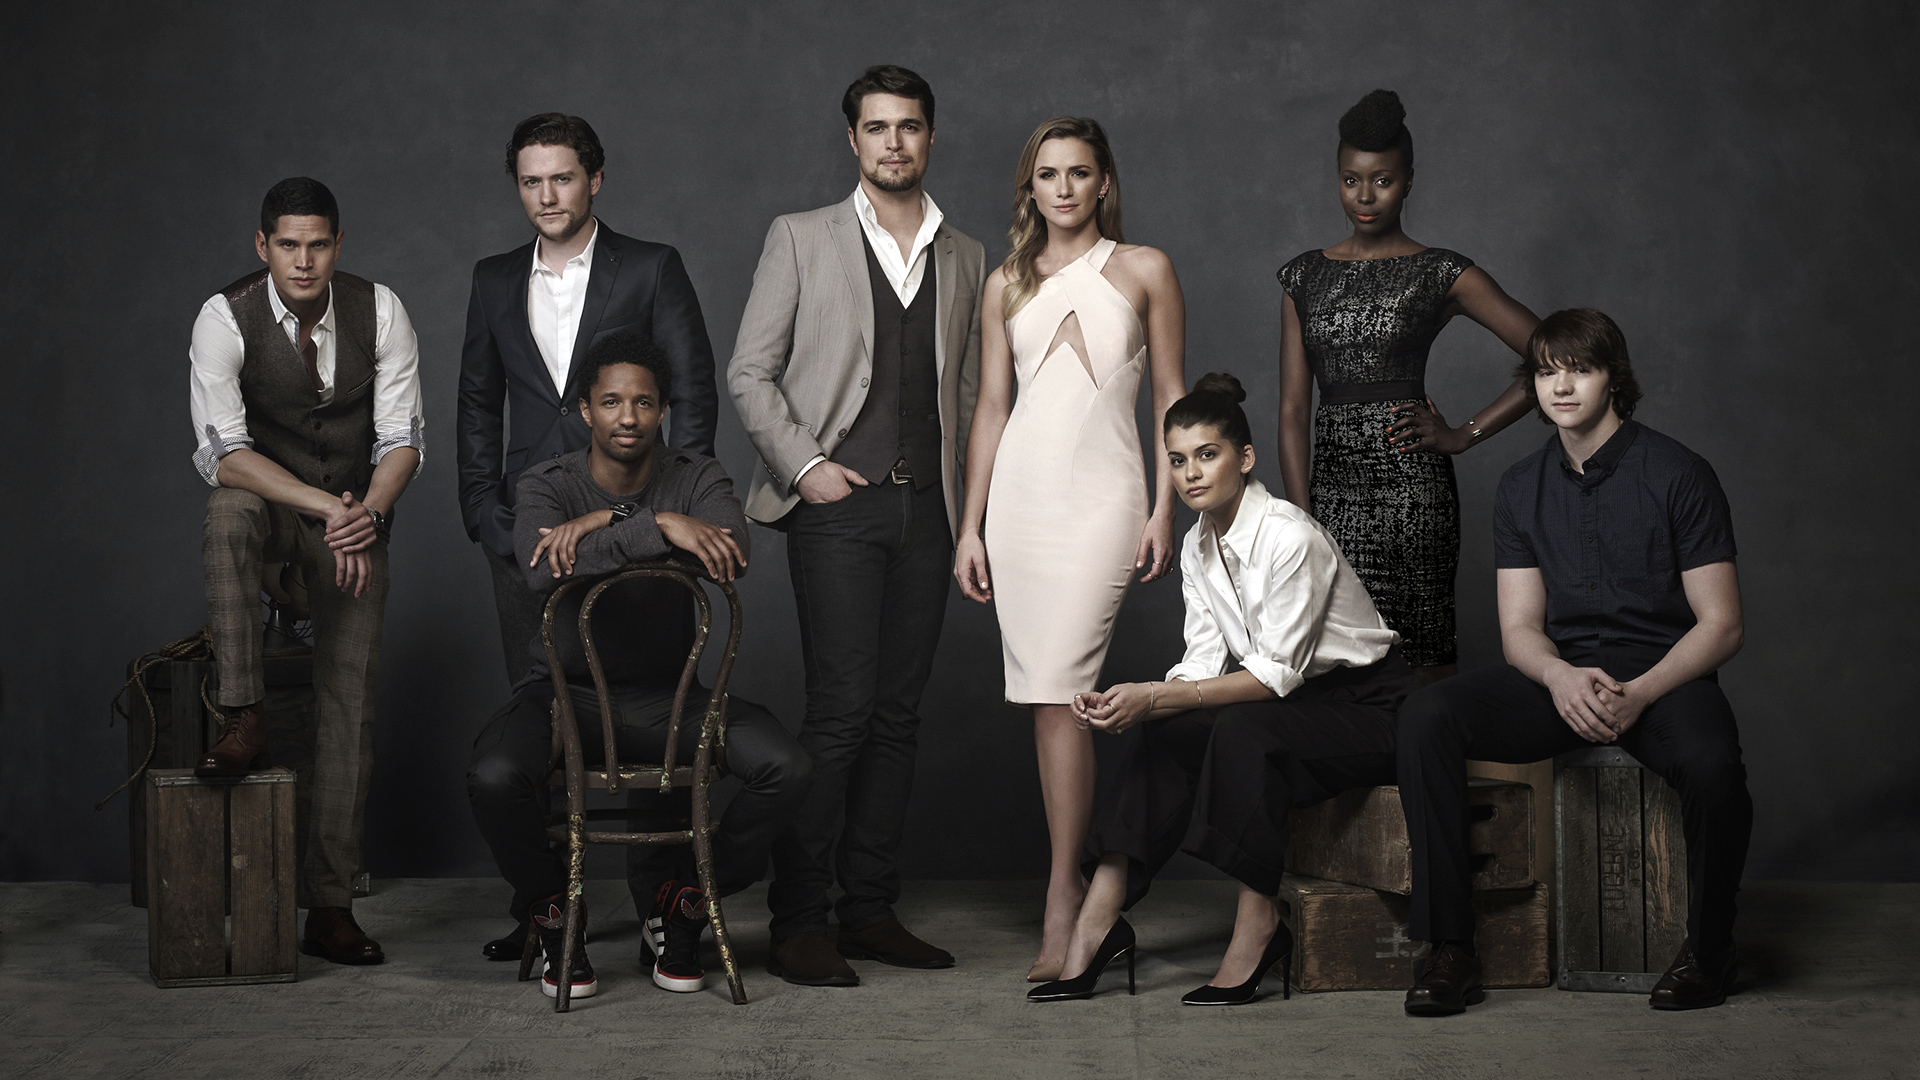 The CW announces 2014-2015 fall schedule